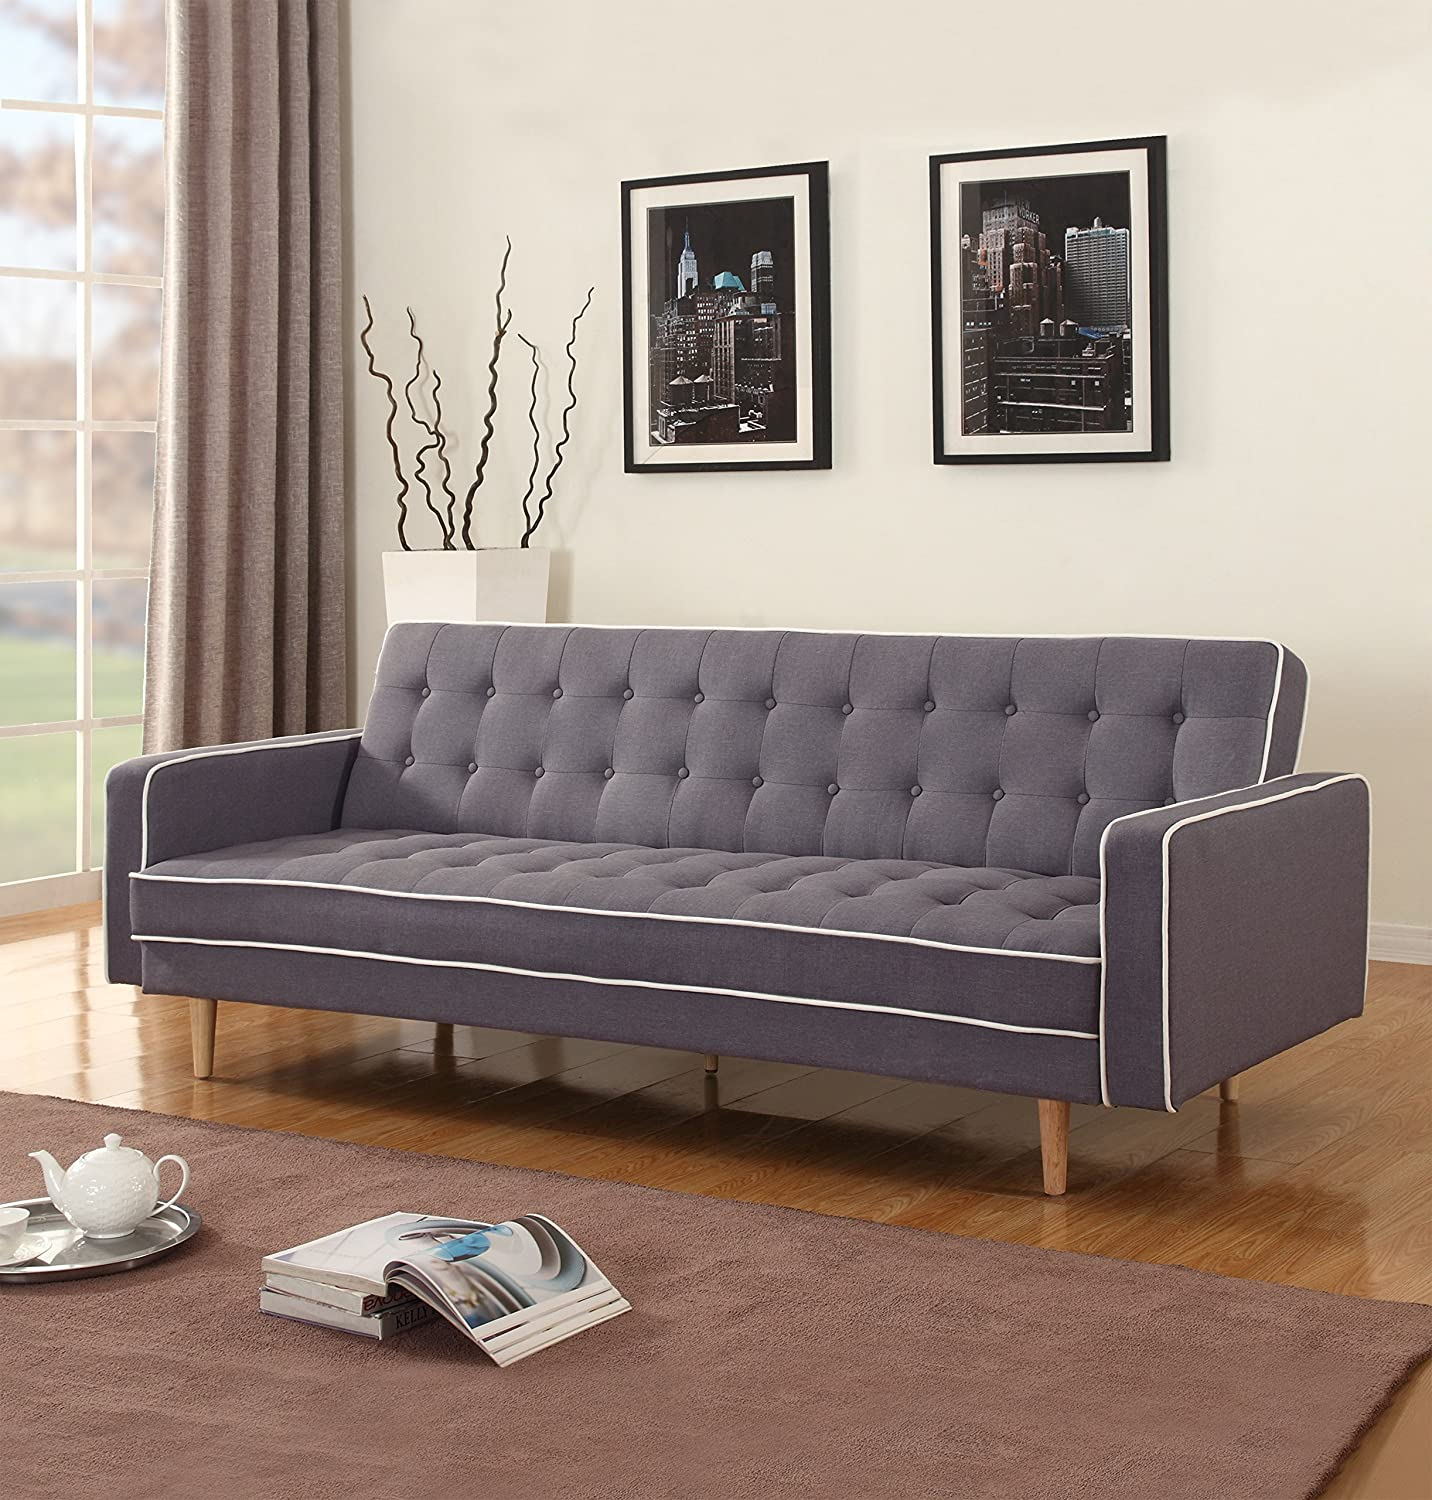 Amazon: Mid-Century Modern Two Tone Vintage Linen Sleeper Futon Sofa,  Grey, Beige, Red (Dark Grey): Kitchen & Dining